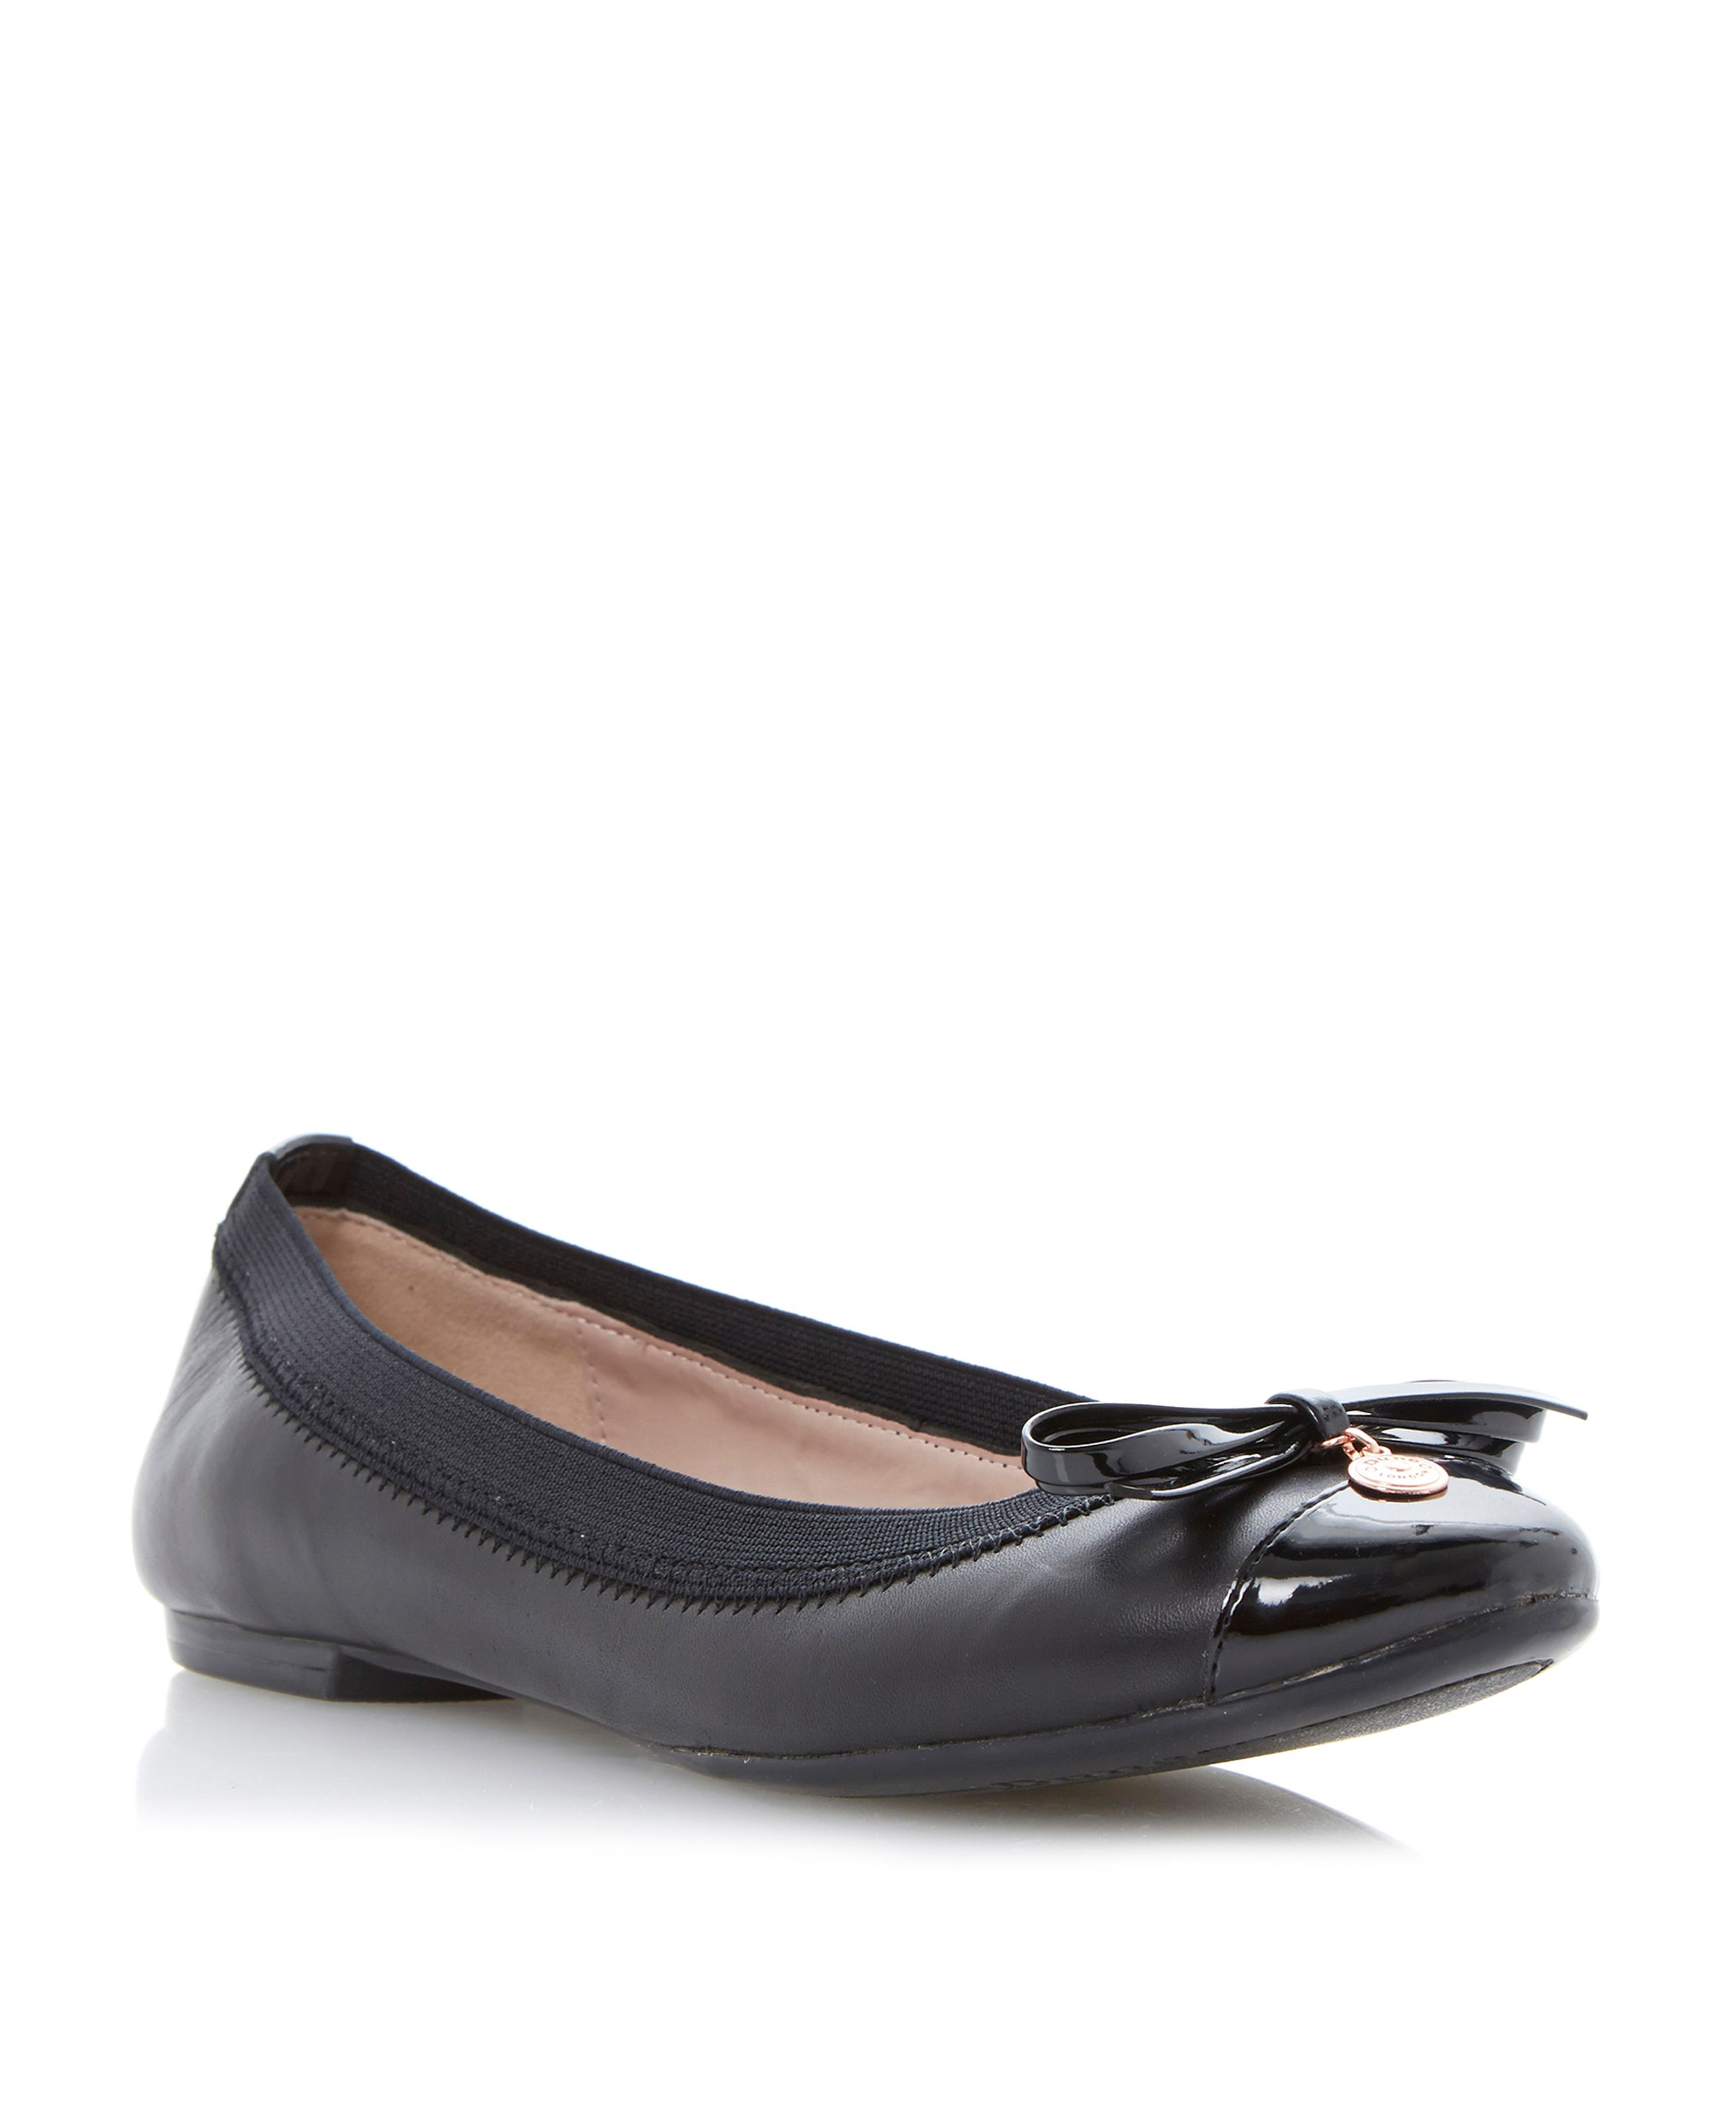 Maeby metal coin trim leather ballerina pumps